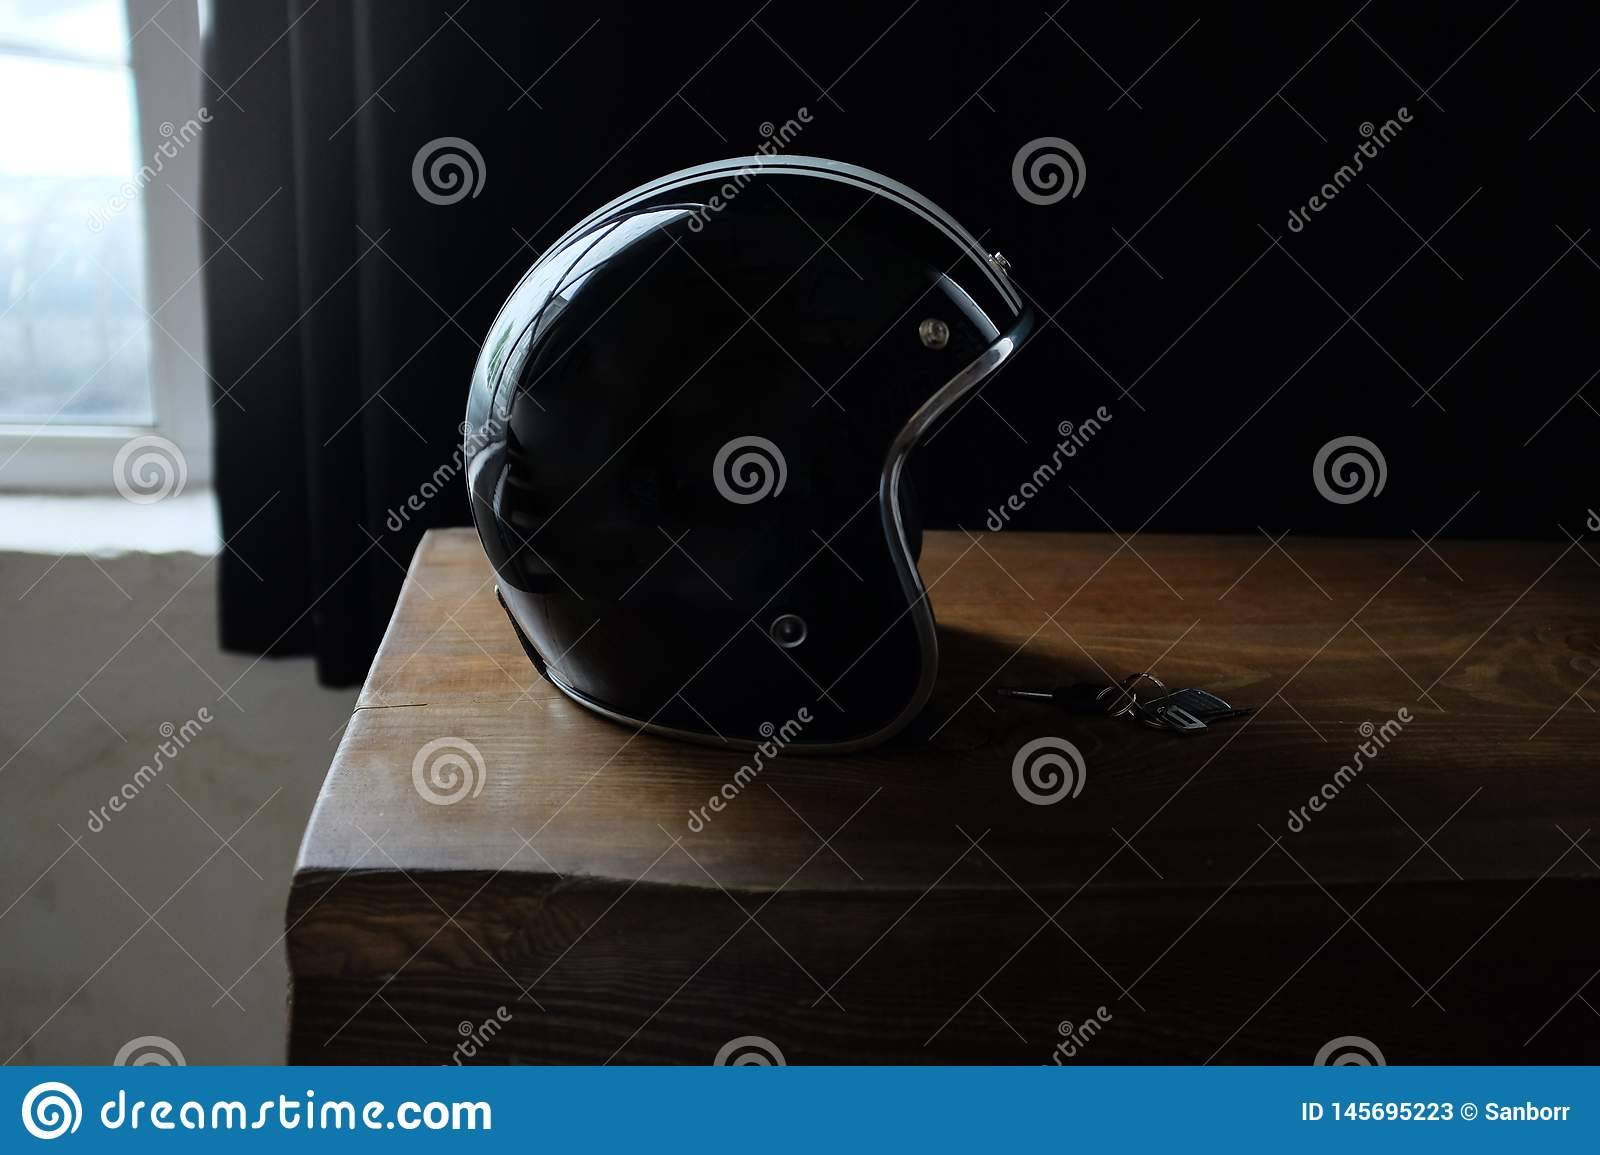 Overhead view of biker accessories placed on rustic wooden table. Items included motorcycle helmet, gloves, keys,. Motorcycle